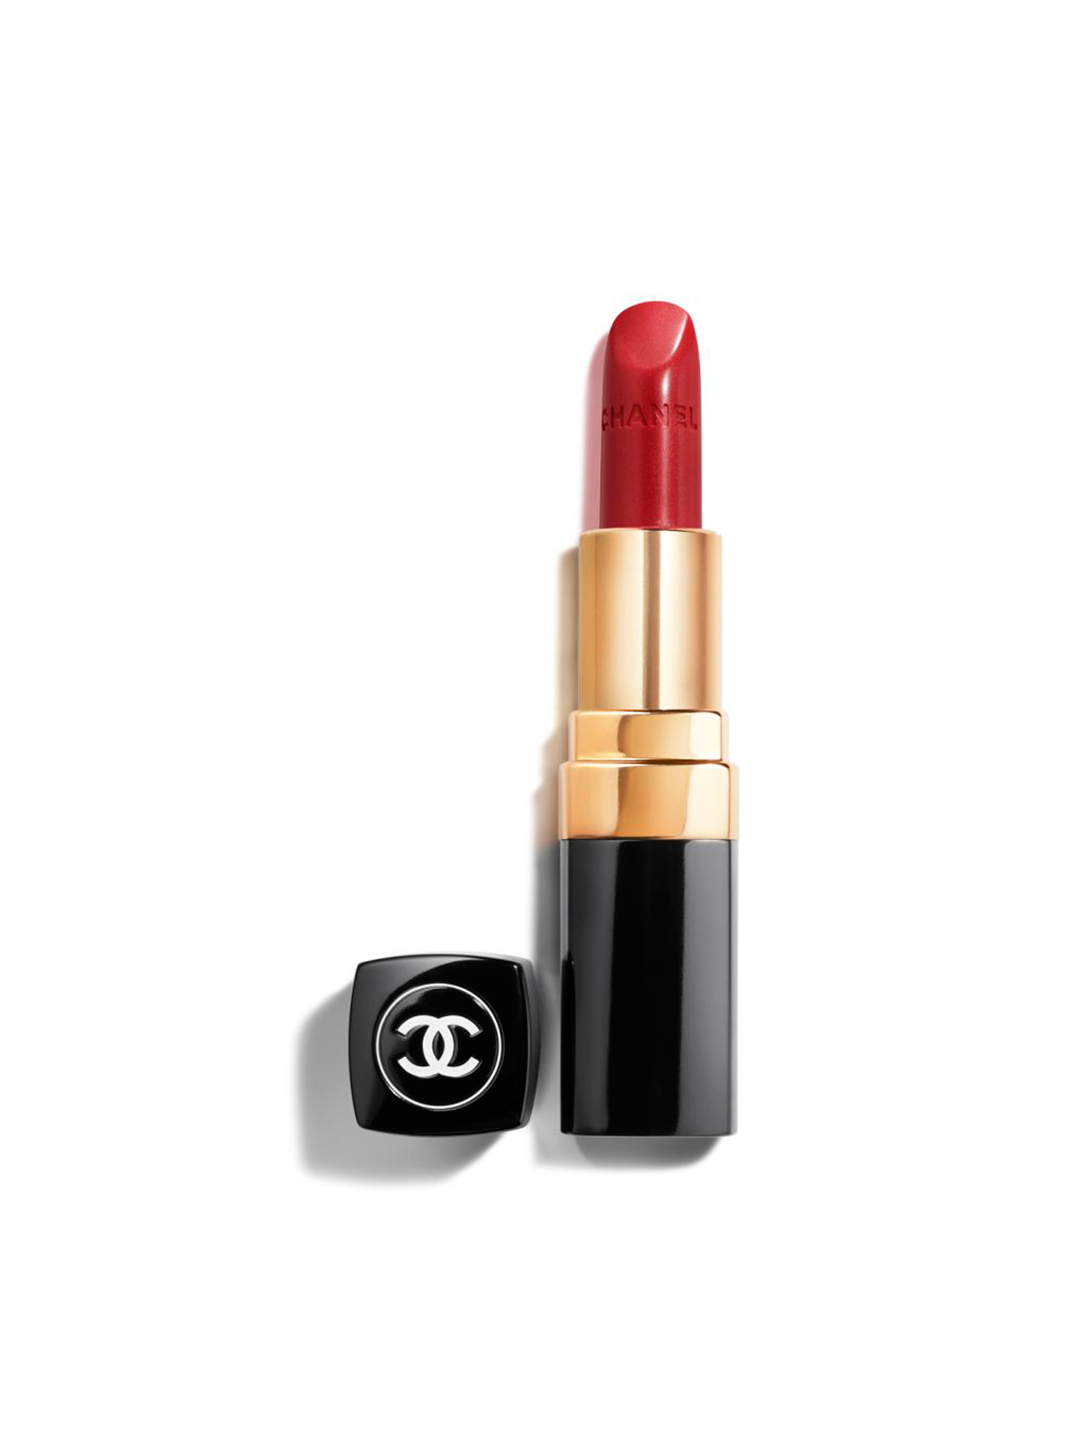 CHANEL Ultra Hydrating Lip Colour CHANEL Red